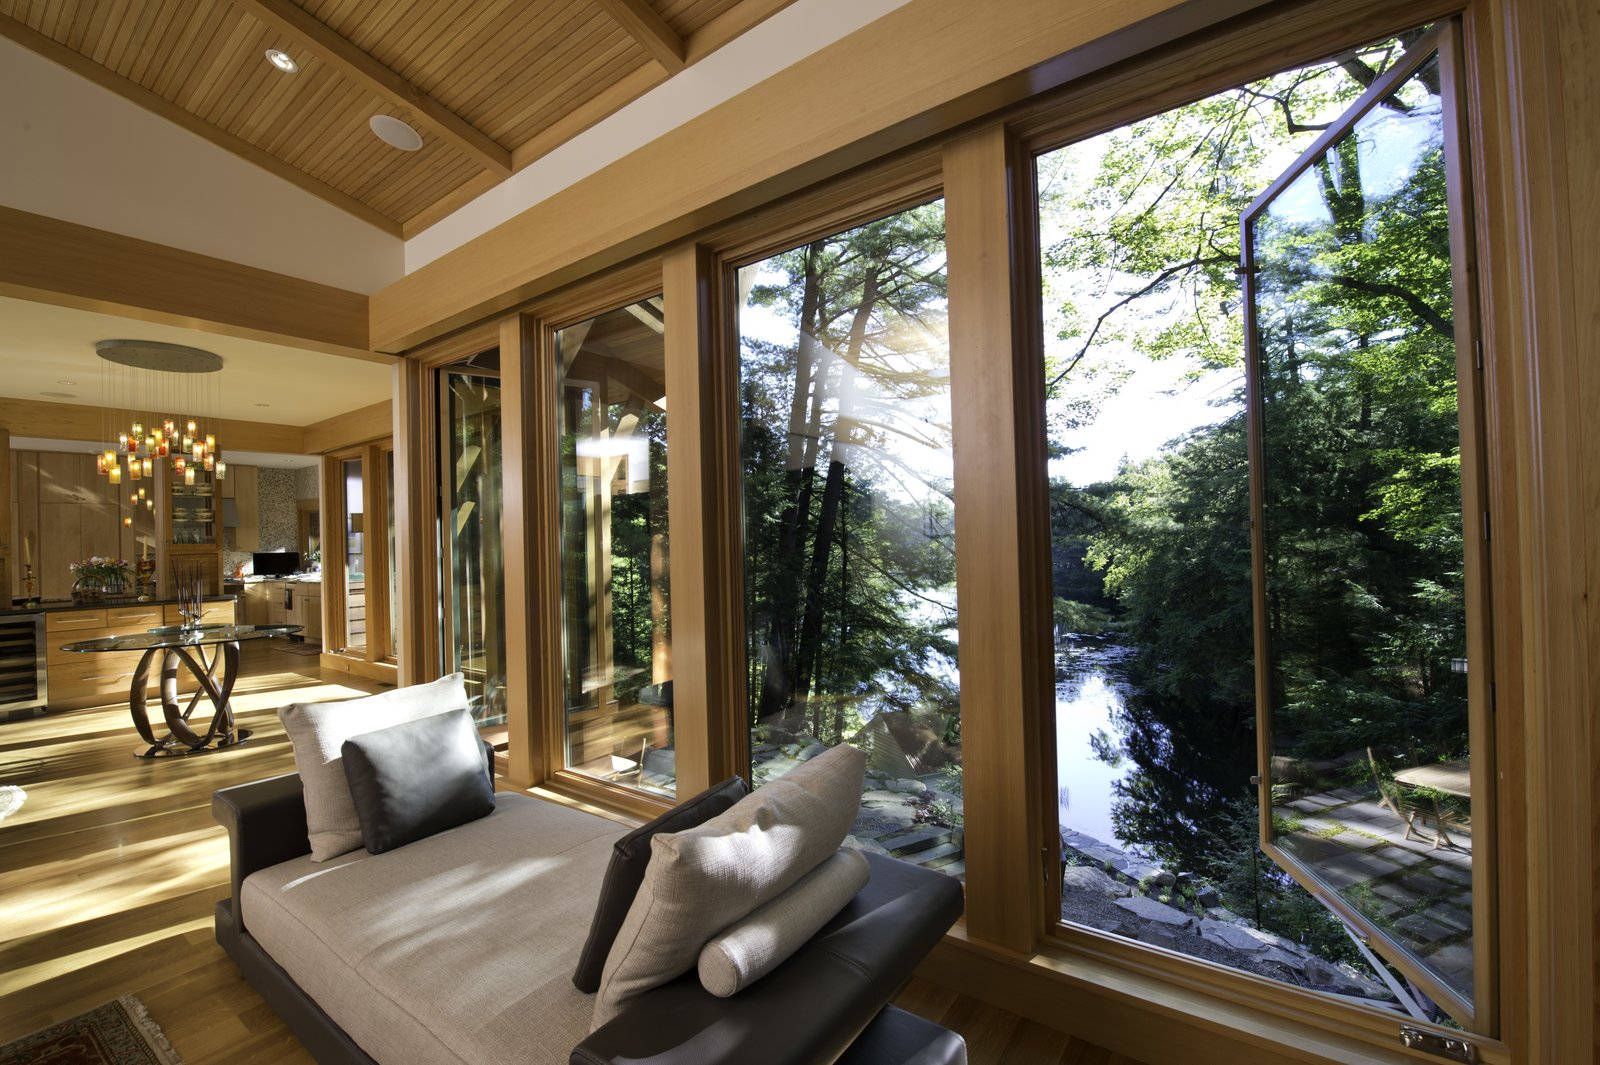 Living room overlooking Lake Luzerne  Fourth Lake Summer House by Phinney Design Group